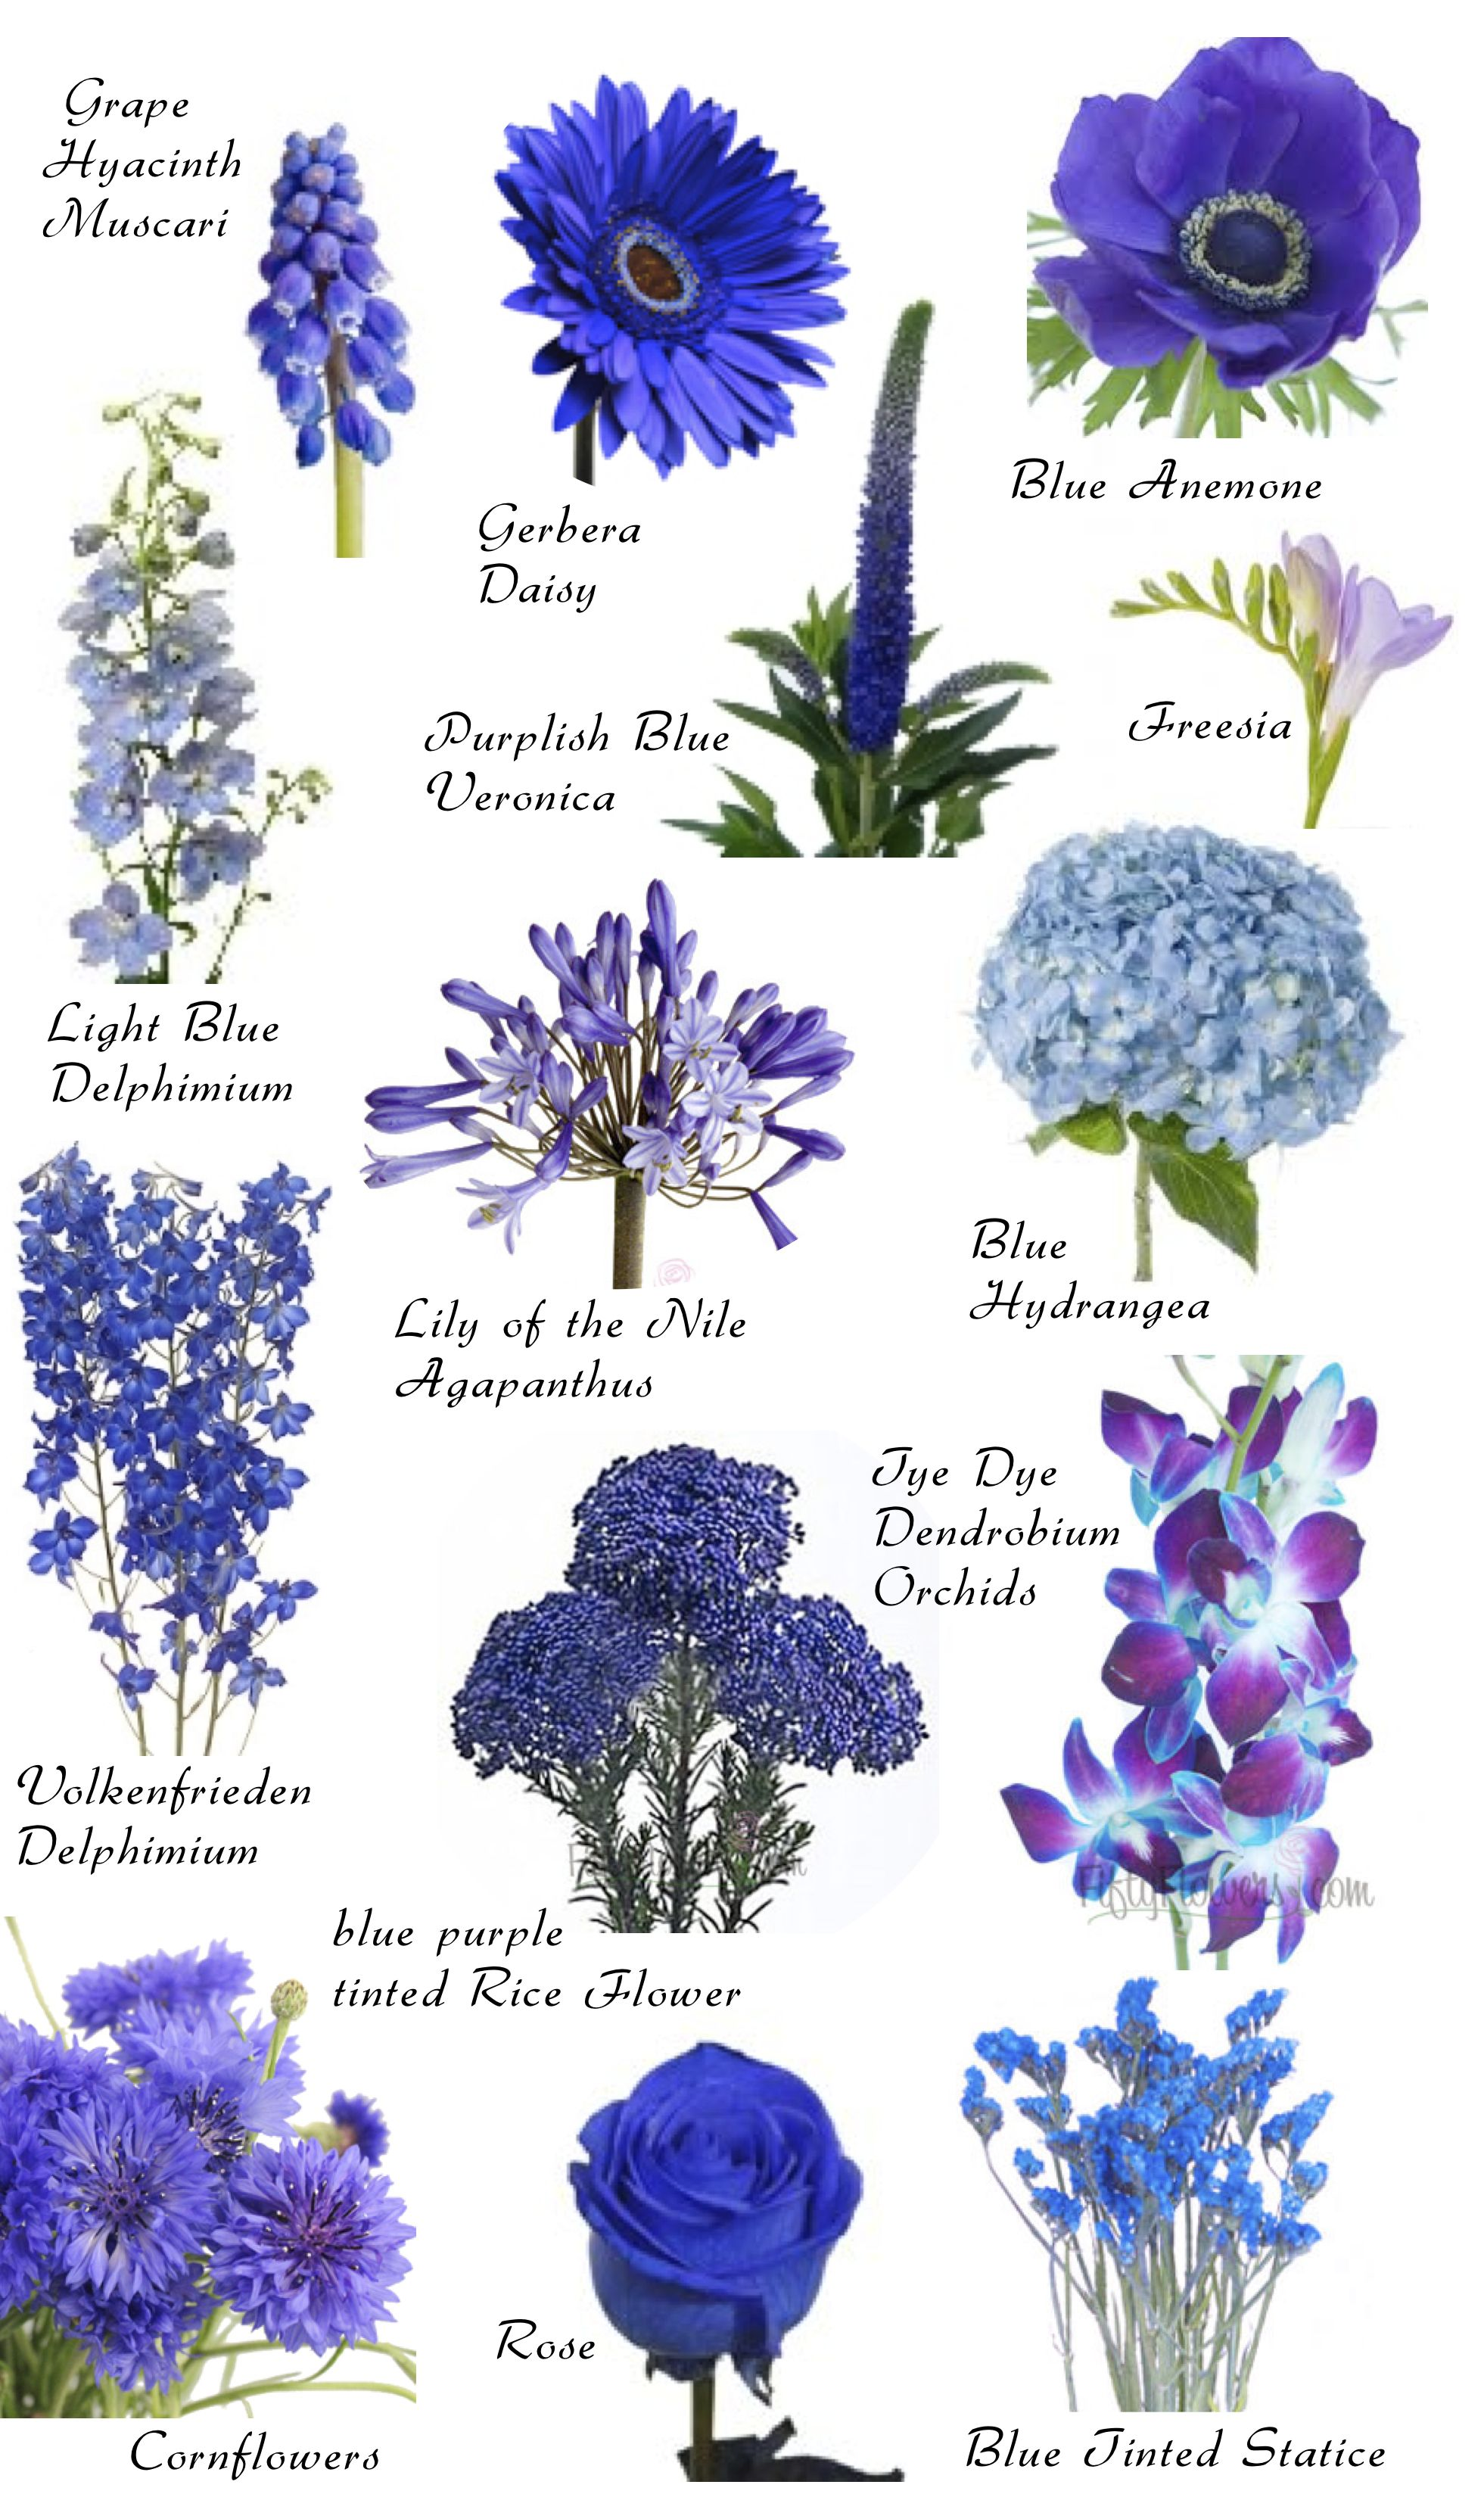 Flower names by Color | Flower | Pinterest | Flower, Flowers and Gardens